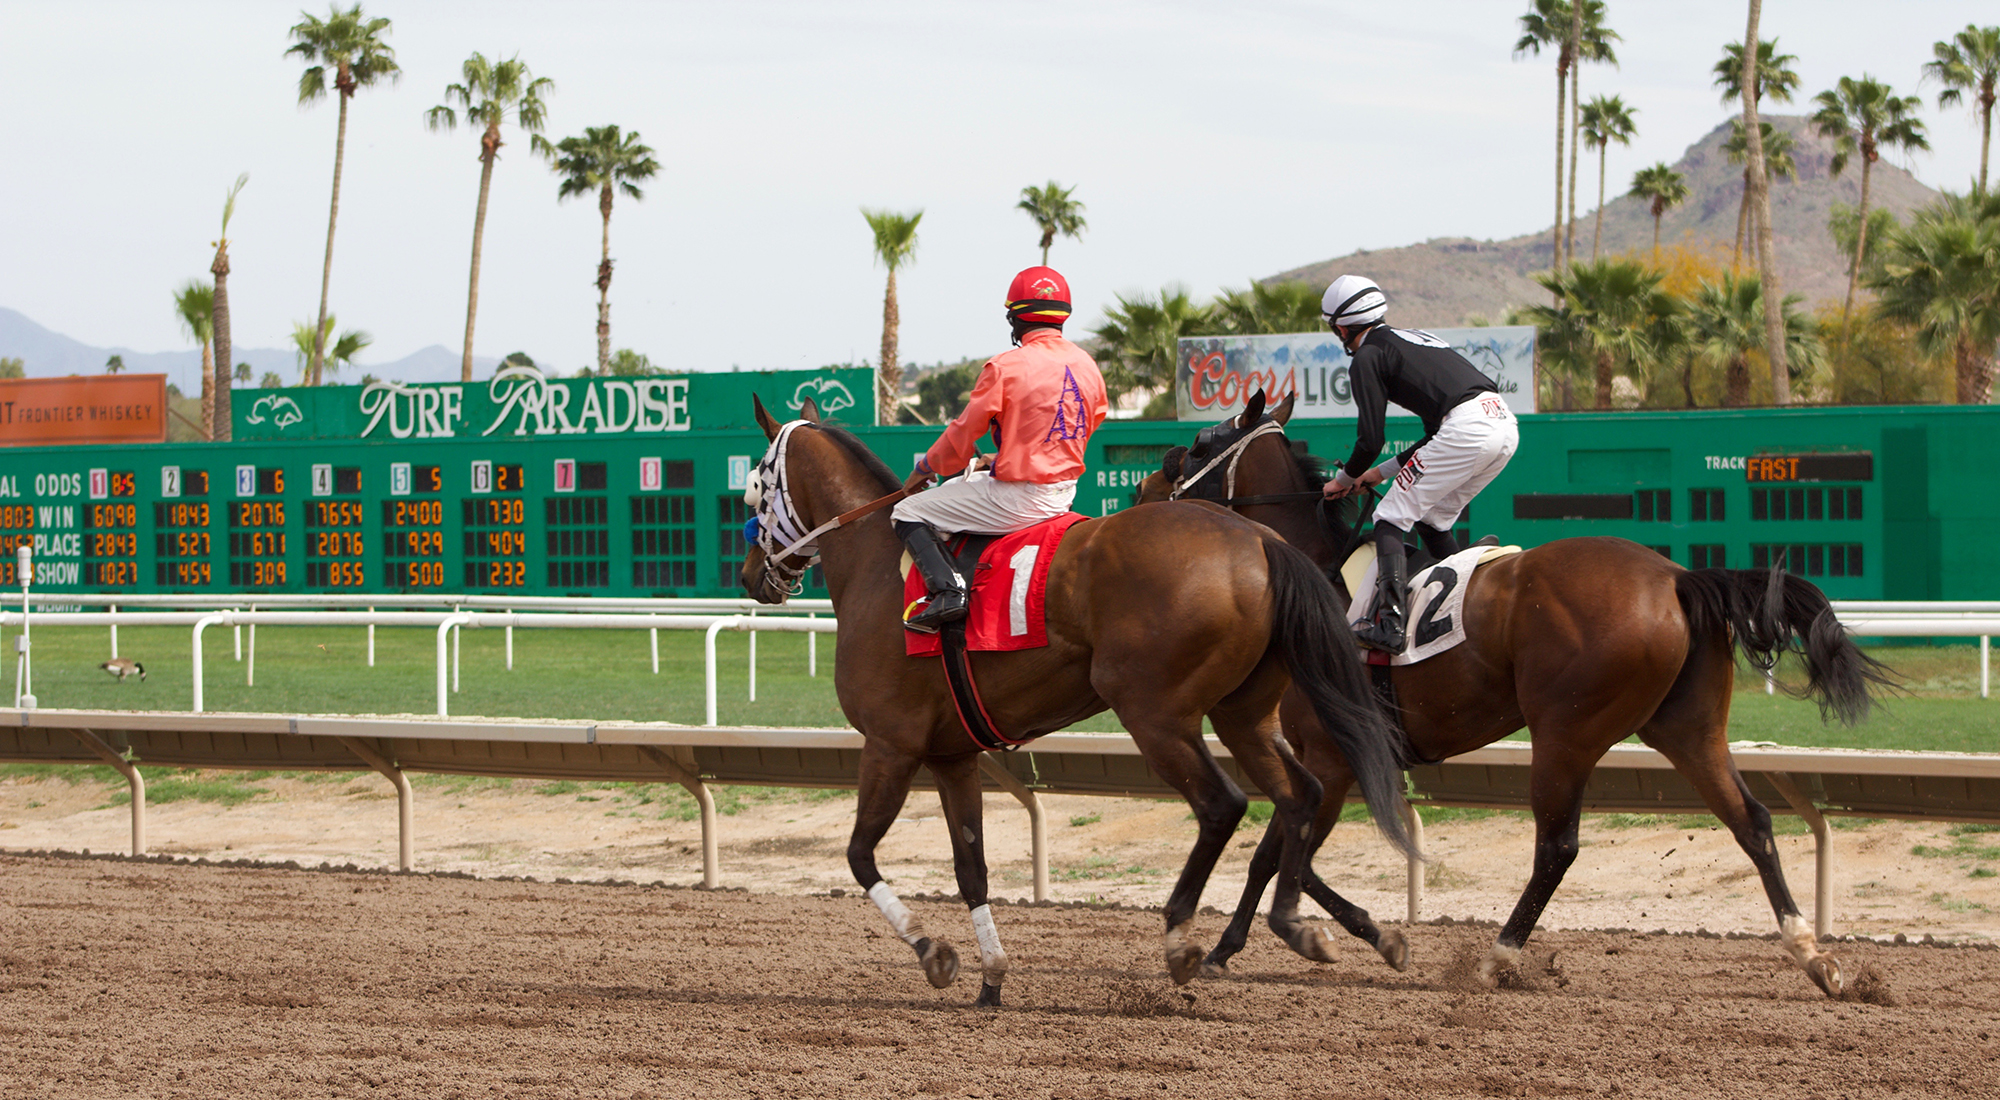 After An Increase In Deaths Of Horses, Turf Paradise Looks